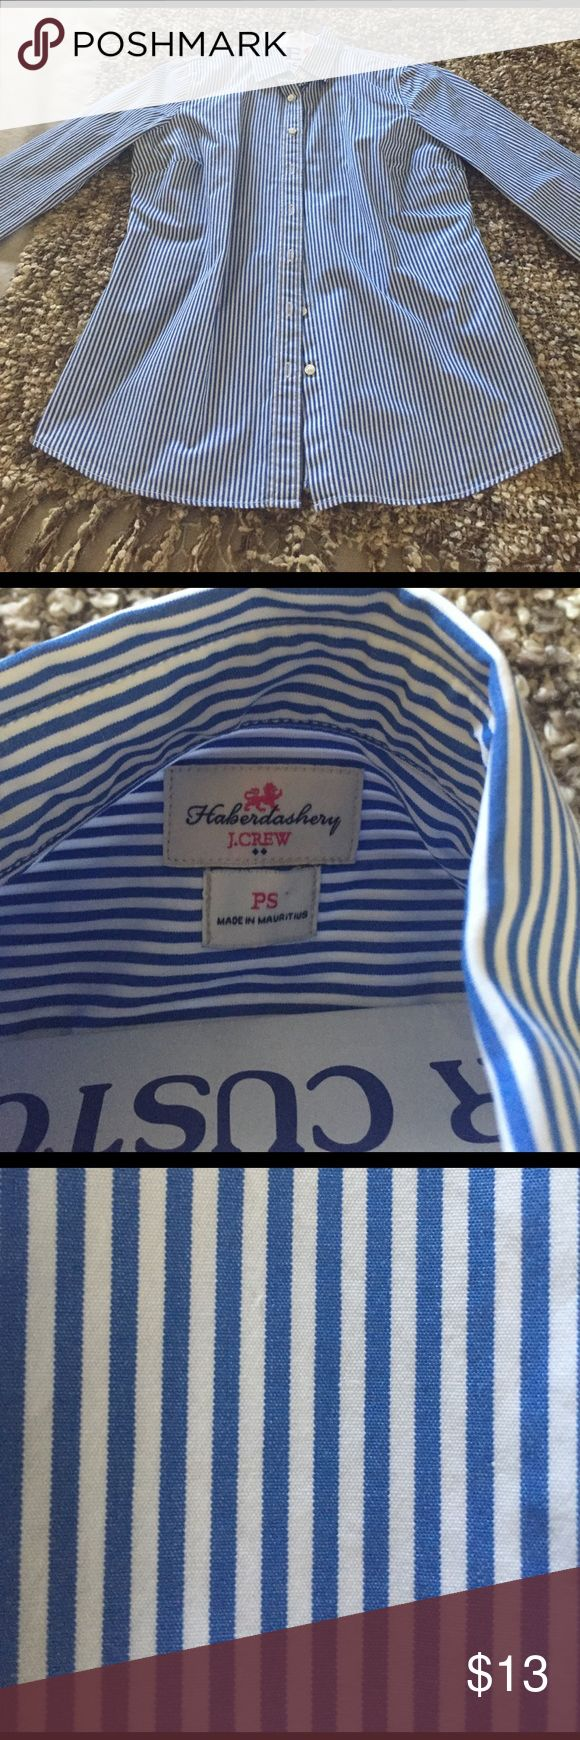 J Crew Haberdashery shirt JCrew Haberdashery striped blue and white dress shirt . NWOT worn once and dry cleaned. Size Petite small J. Crew Tops Blouses